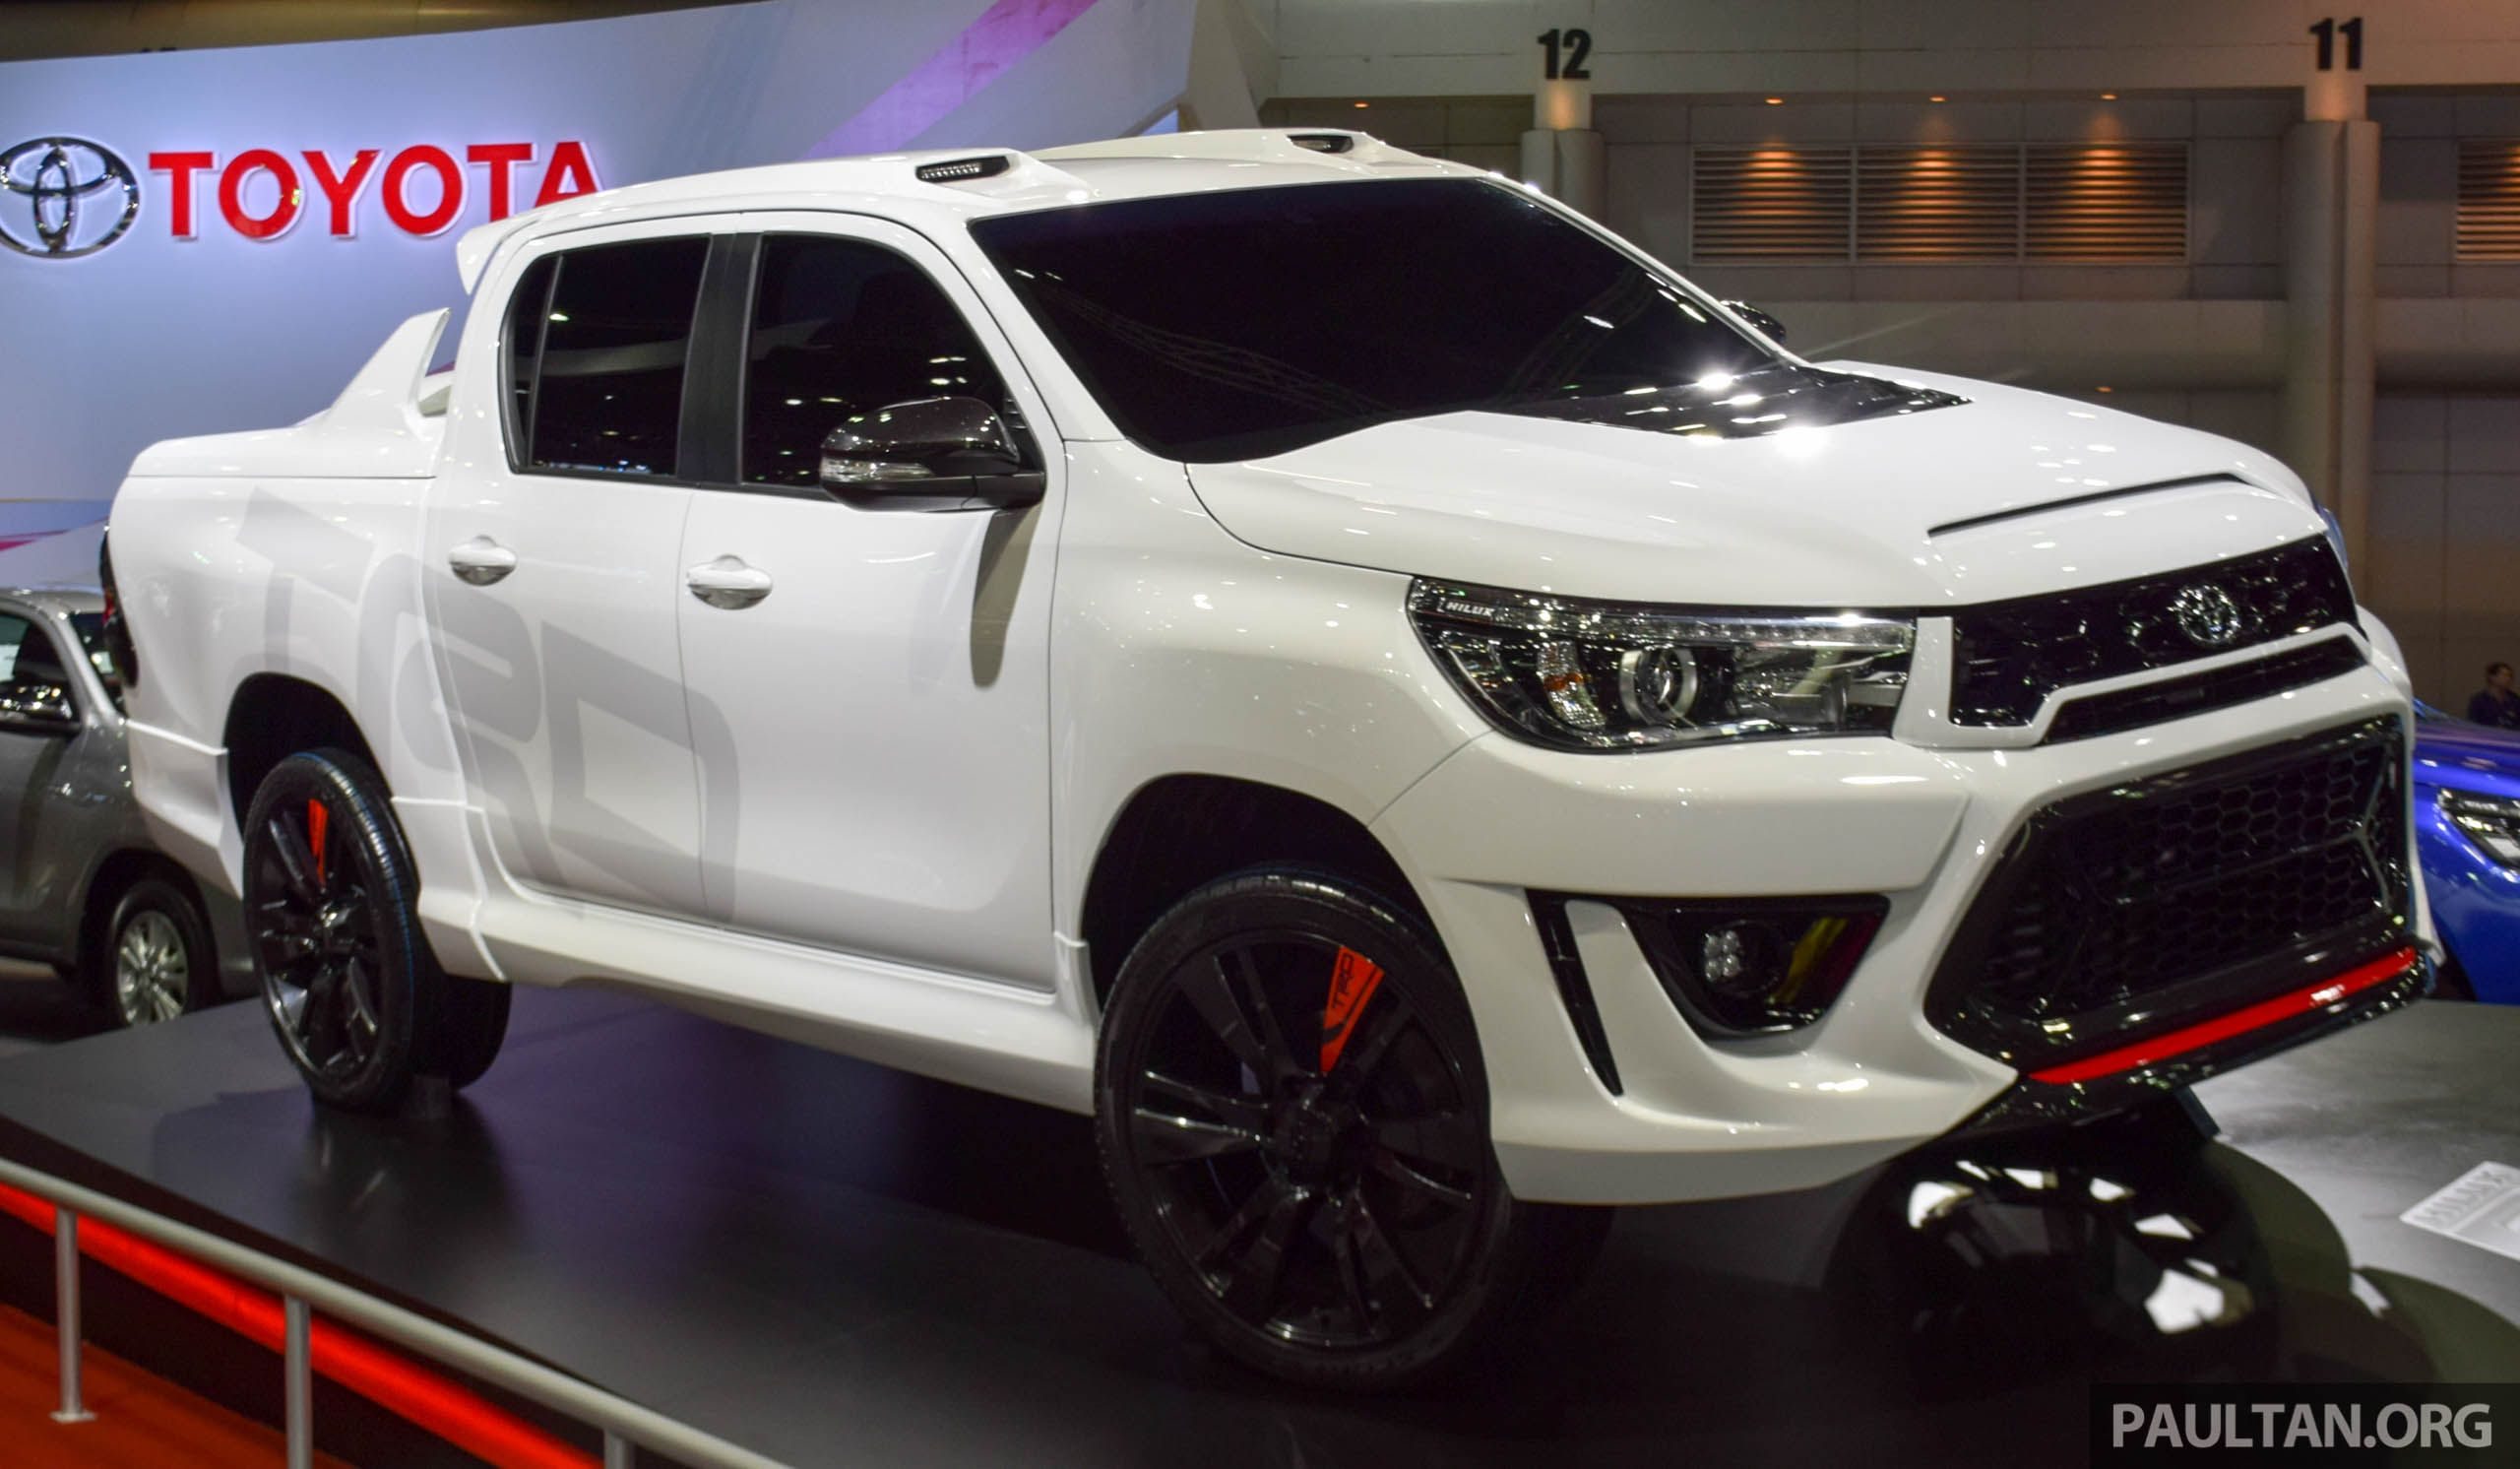 Best Images Of Toyota Hilux Revo Body Kit In 2020 Toyota Hilux Toyota All Sports Cars